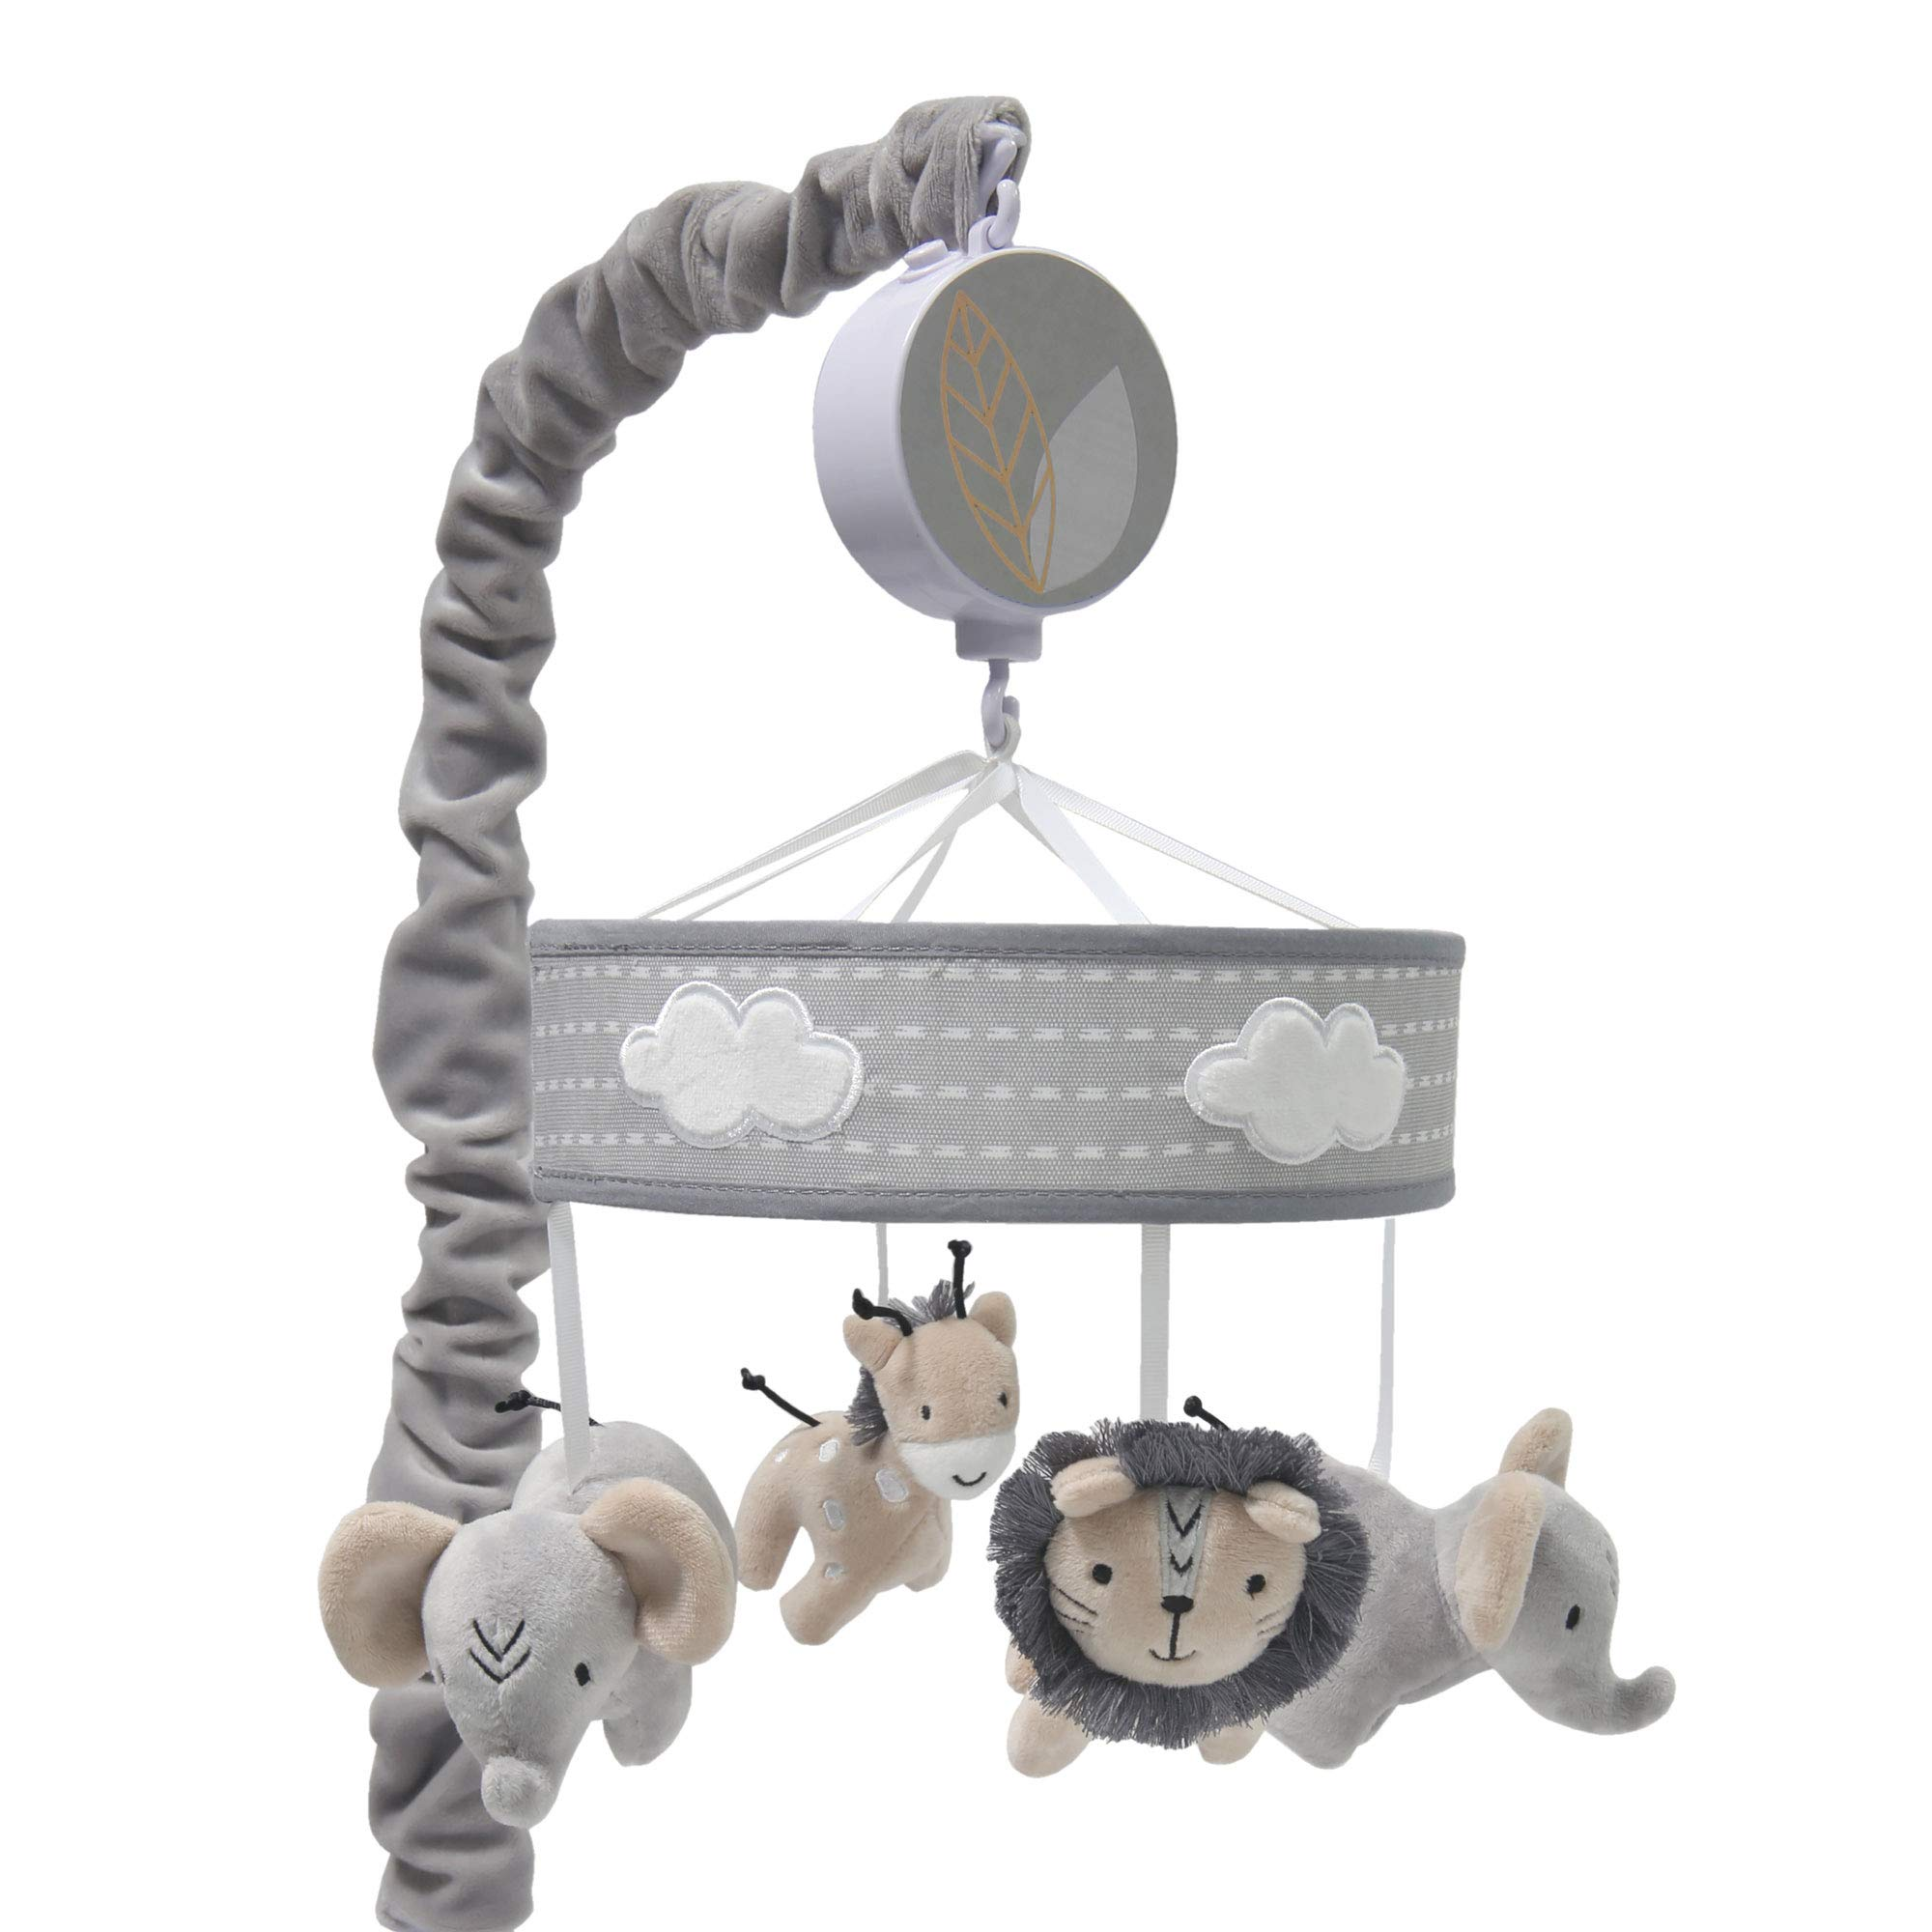 Lambs & Ivy Jungle Safari Musical Baby Crib Mobile - Gray, Beige, White, Animals by Lambs & Ivy